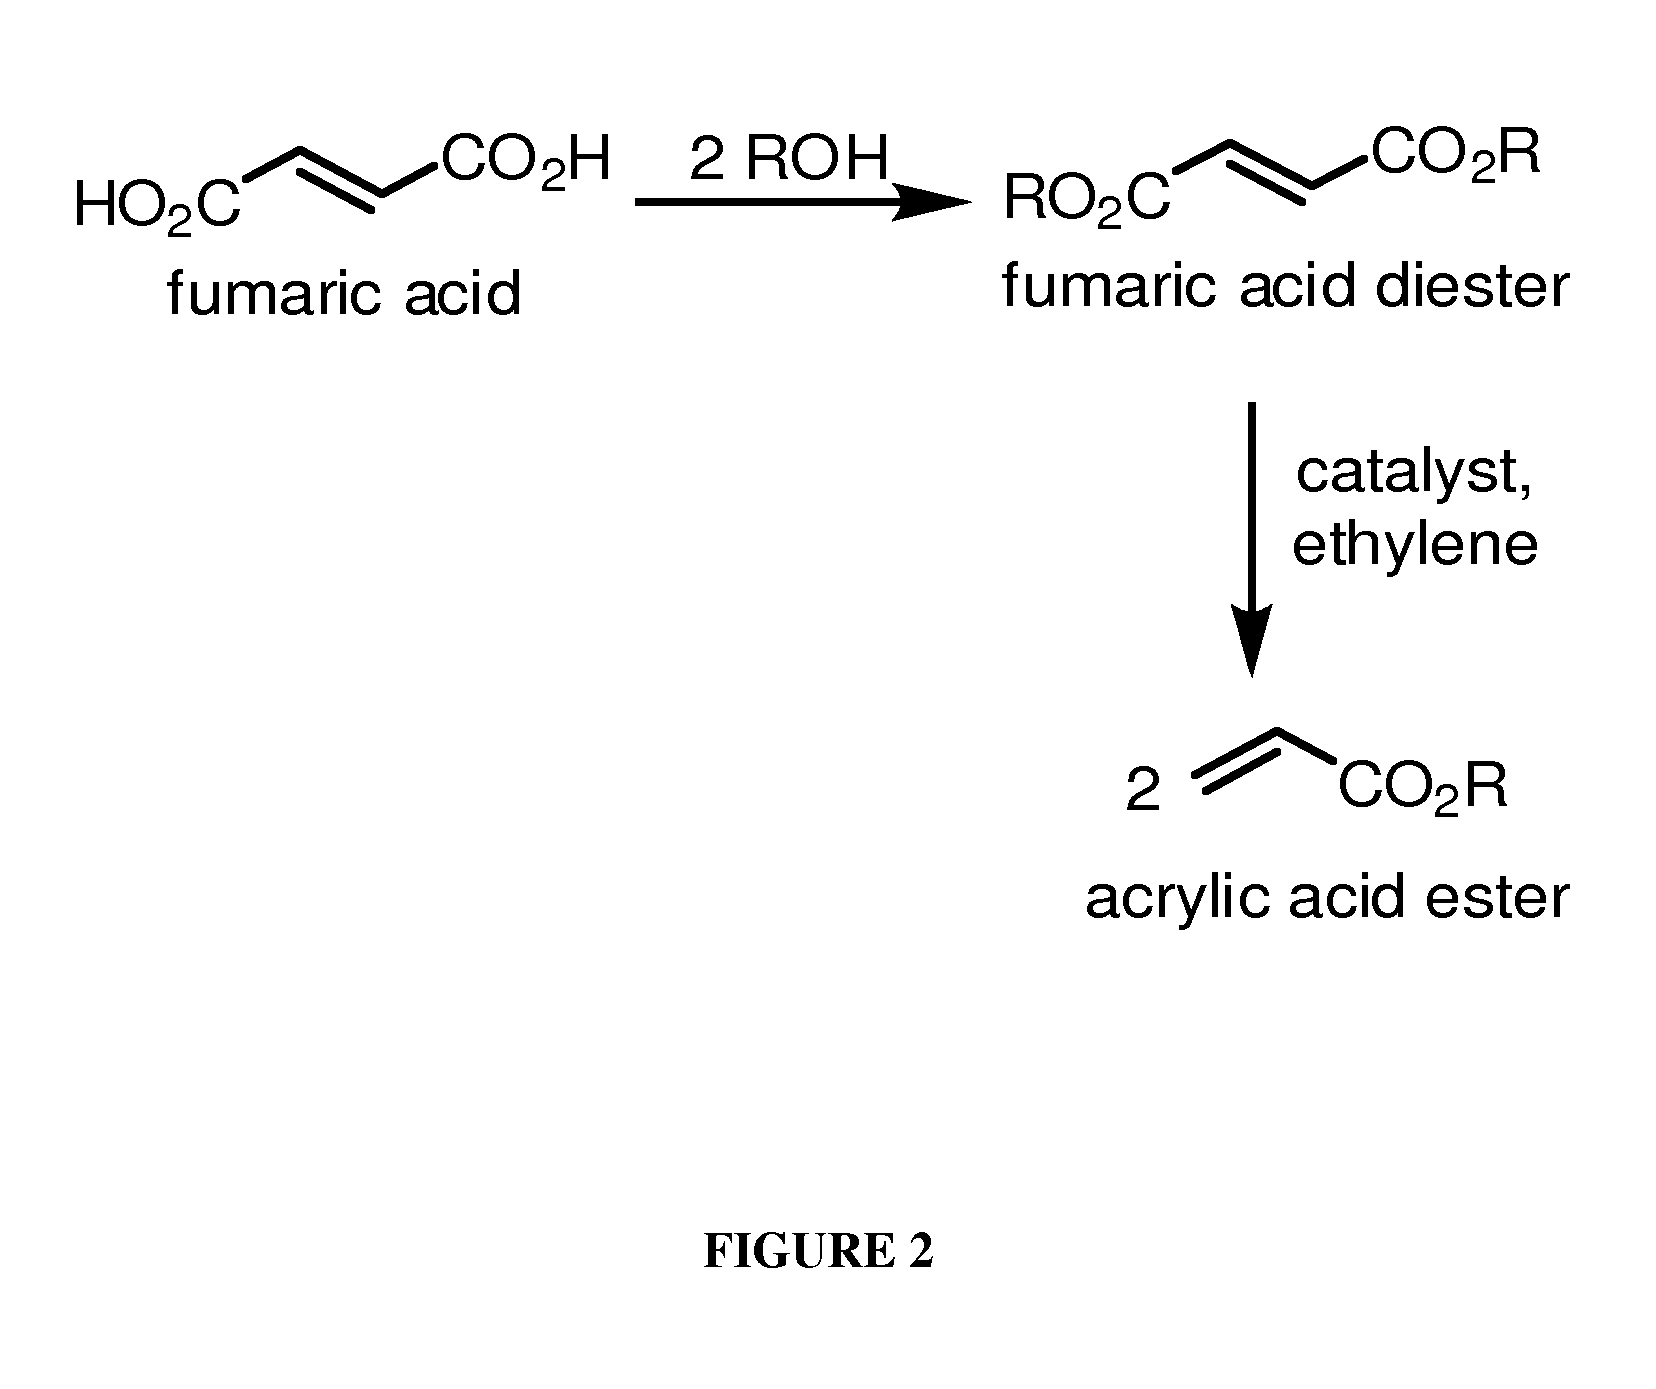 cross metathesis acrylate Read cross‐metathesis of unsaturated triglycerides with methyl acrylate: synthesis of a dimeric metathesis product, european journal of lipid science and technology on deepdyve, the largest online rental service for scholarly research with thousands of academic publications available at your fingertips.